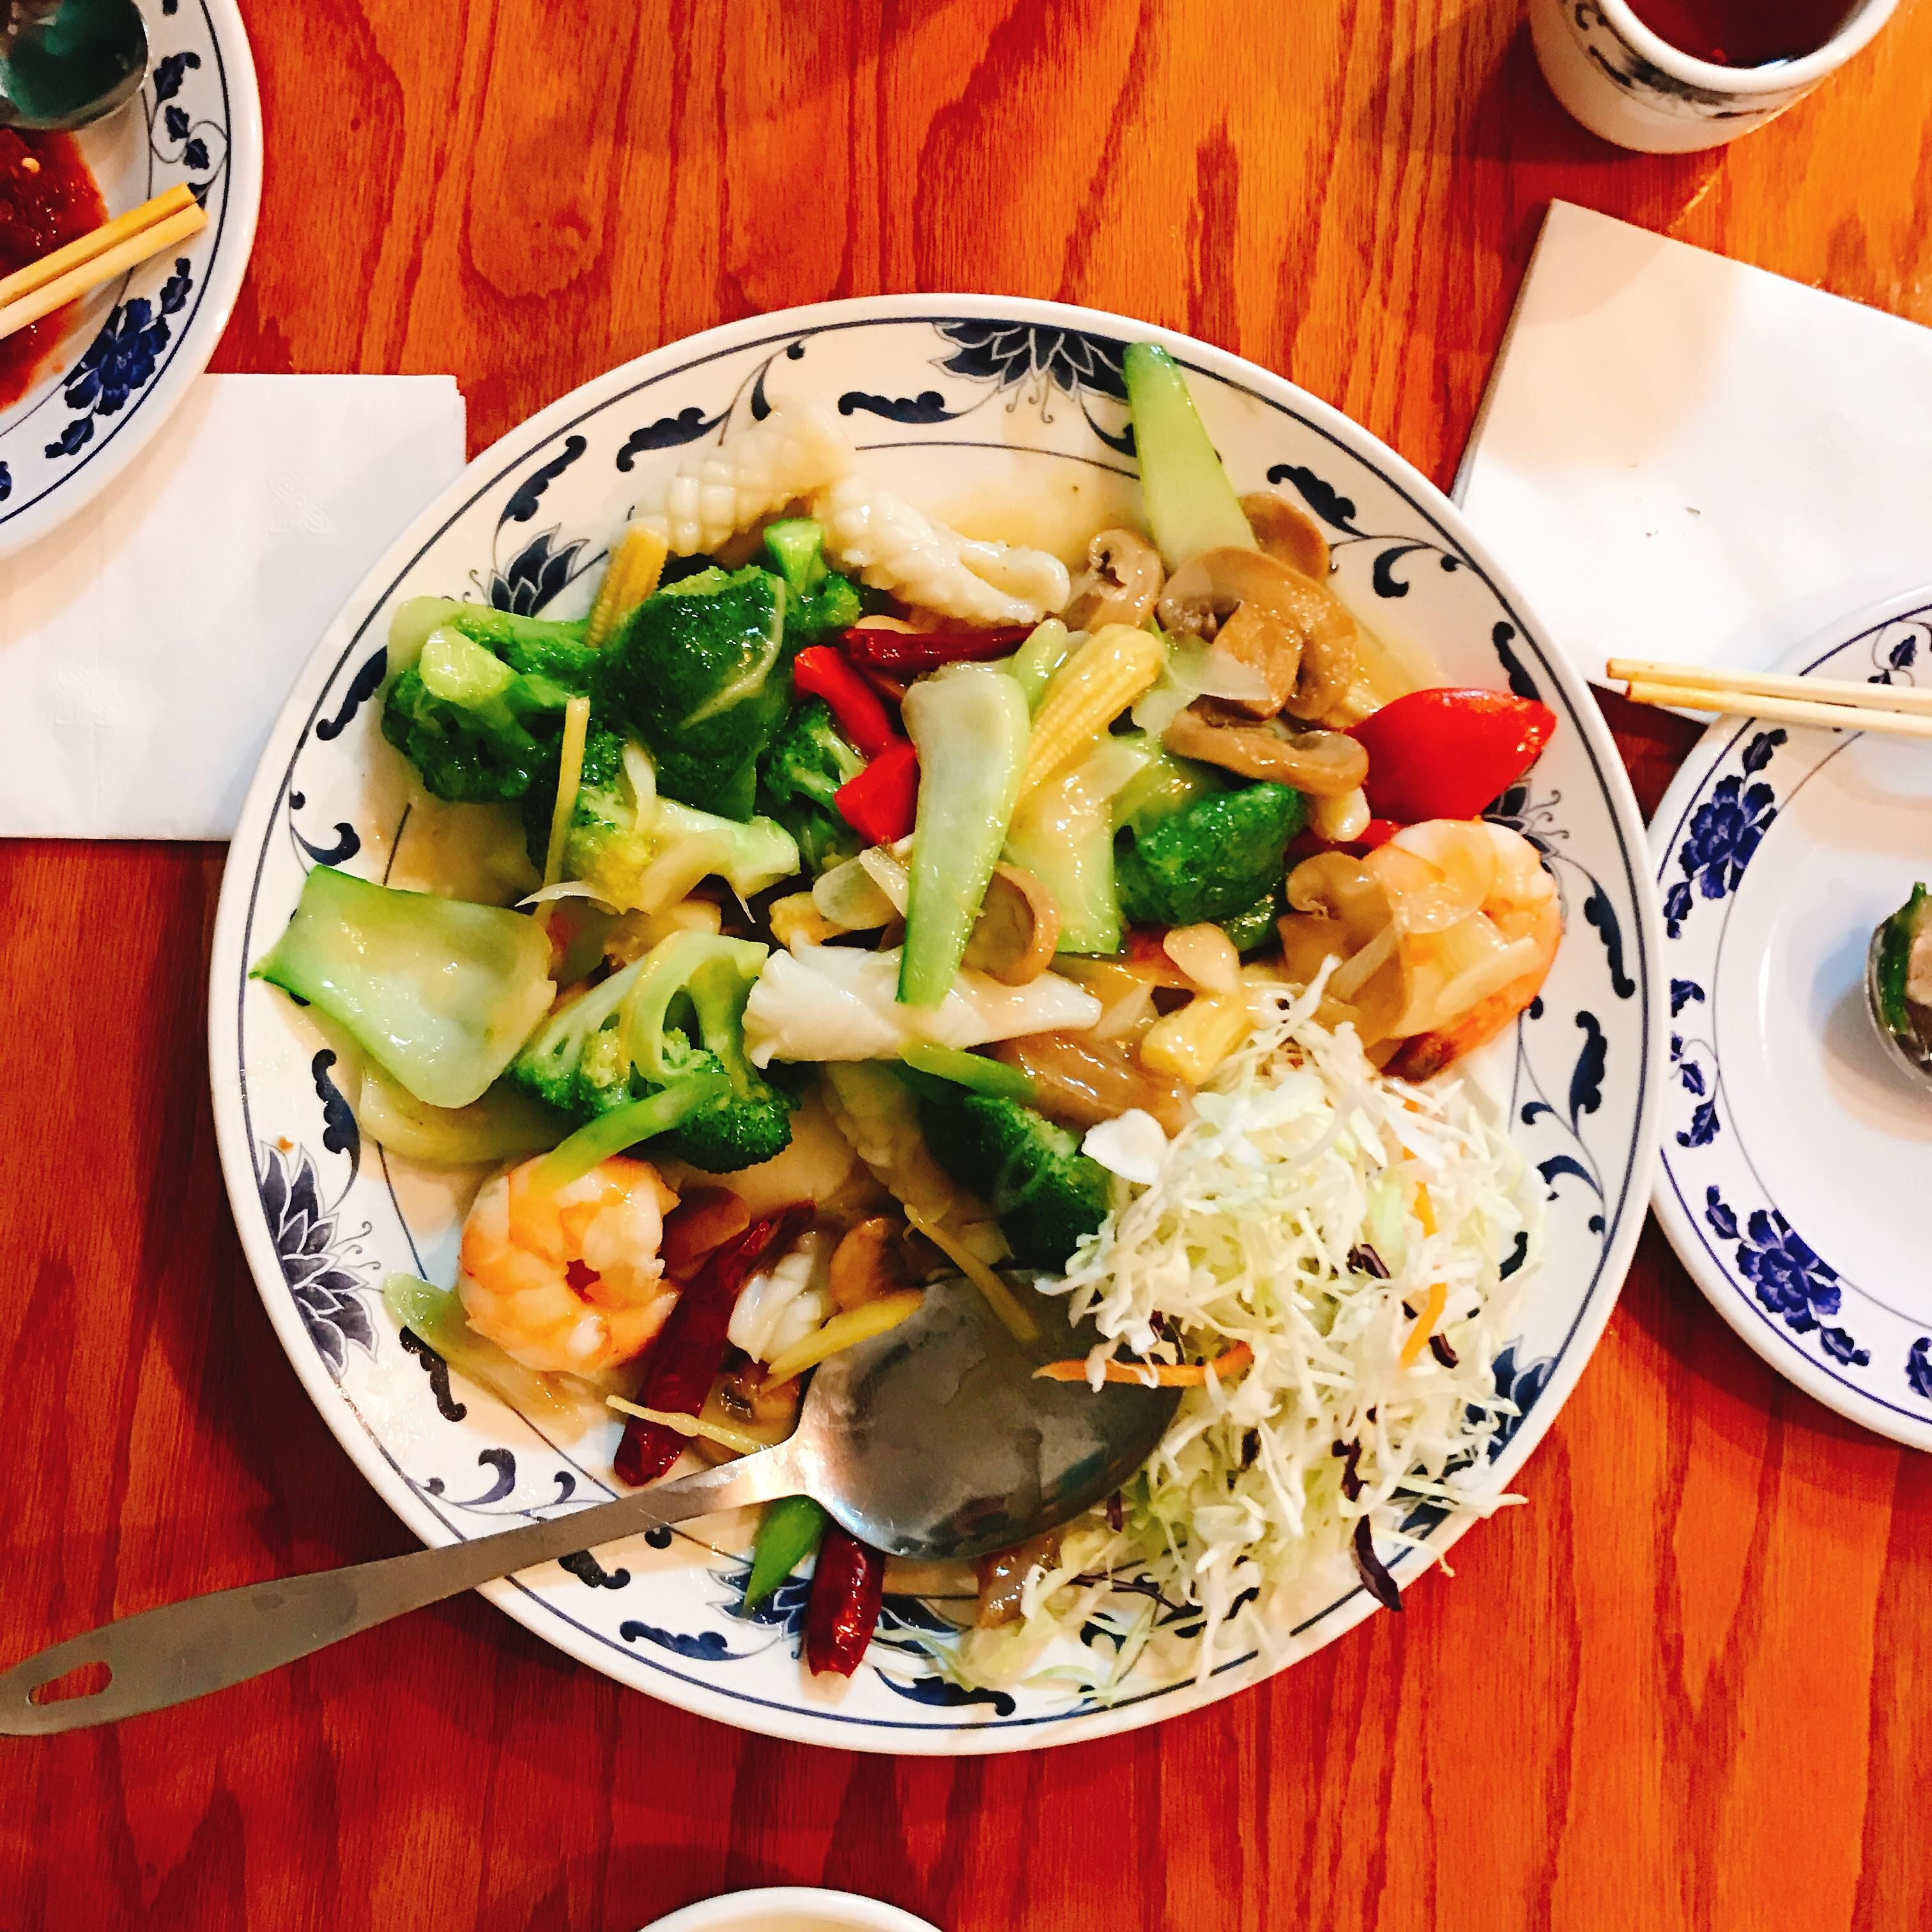 I Ate Korean Style Chinese Food Pal Bo Chae Recipes Food Cooking Delicious Foodie Foodrecipes Cook Recipe Health Chinese Food Food Korean Food